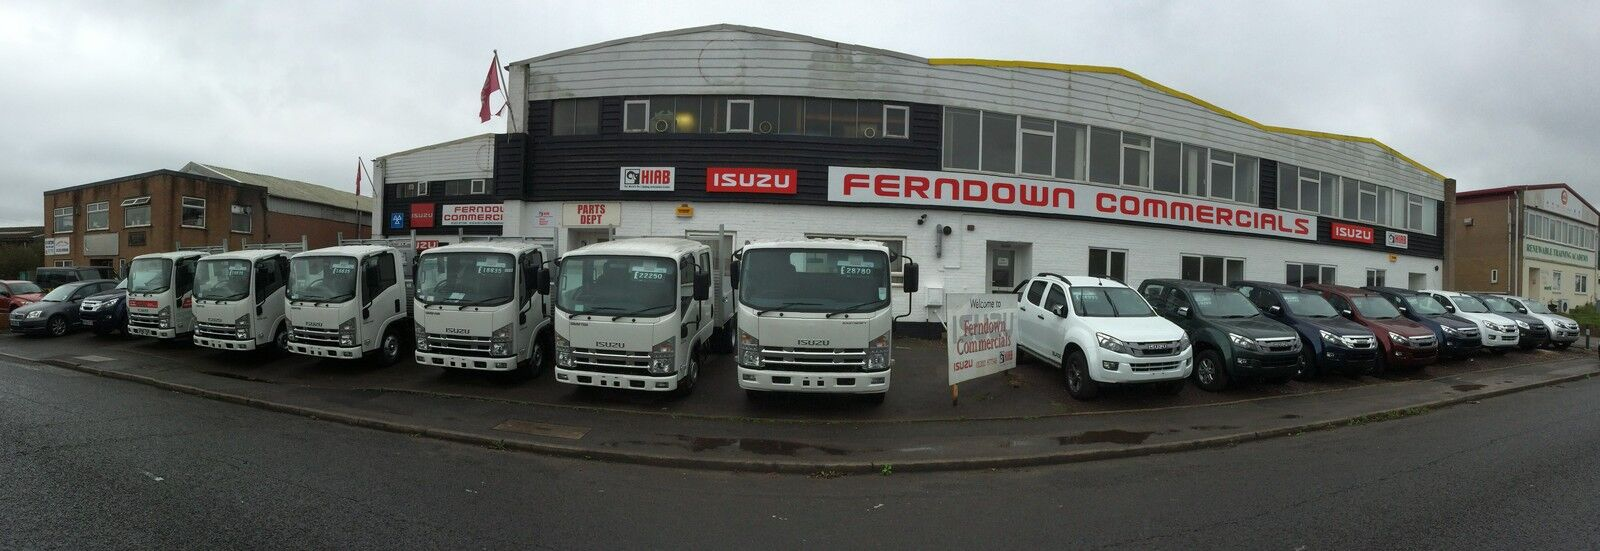 Ferndown Commercials LTD